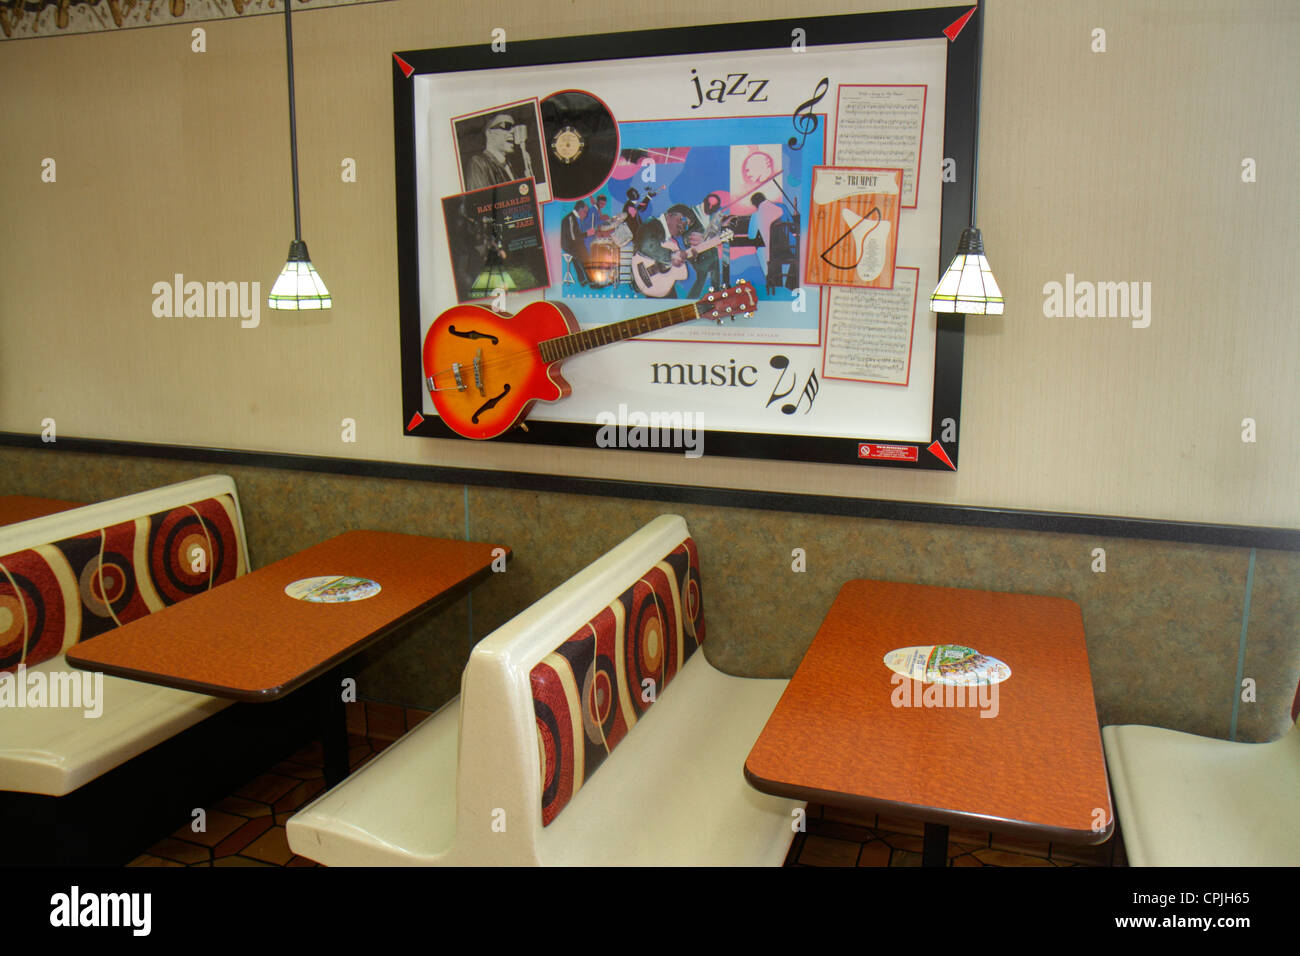 Miami florida mcdonald 39 s fast food restaurant interior for Another word for food decoration